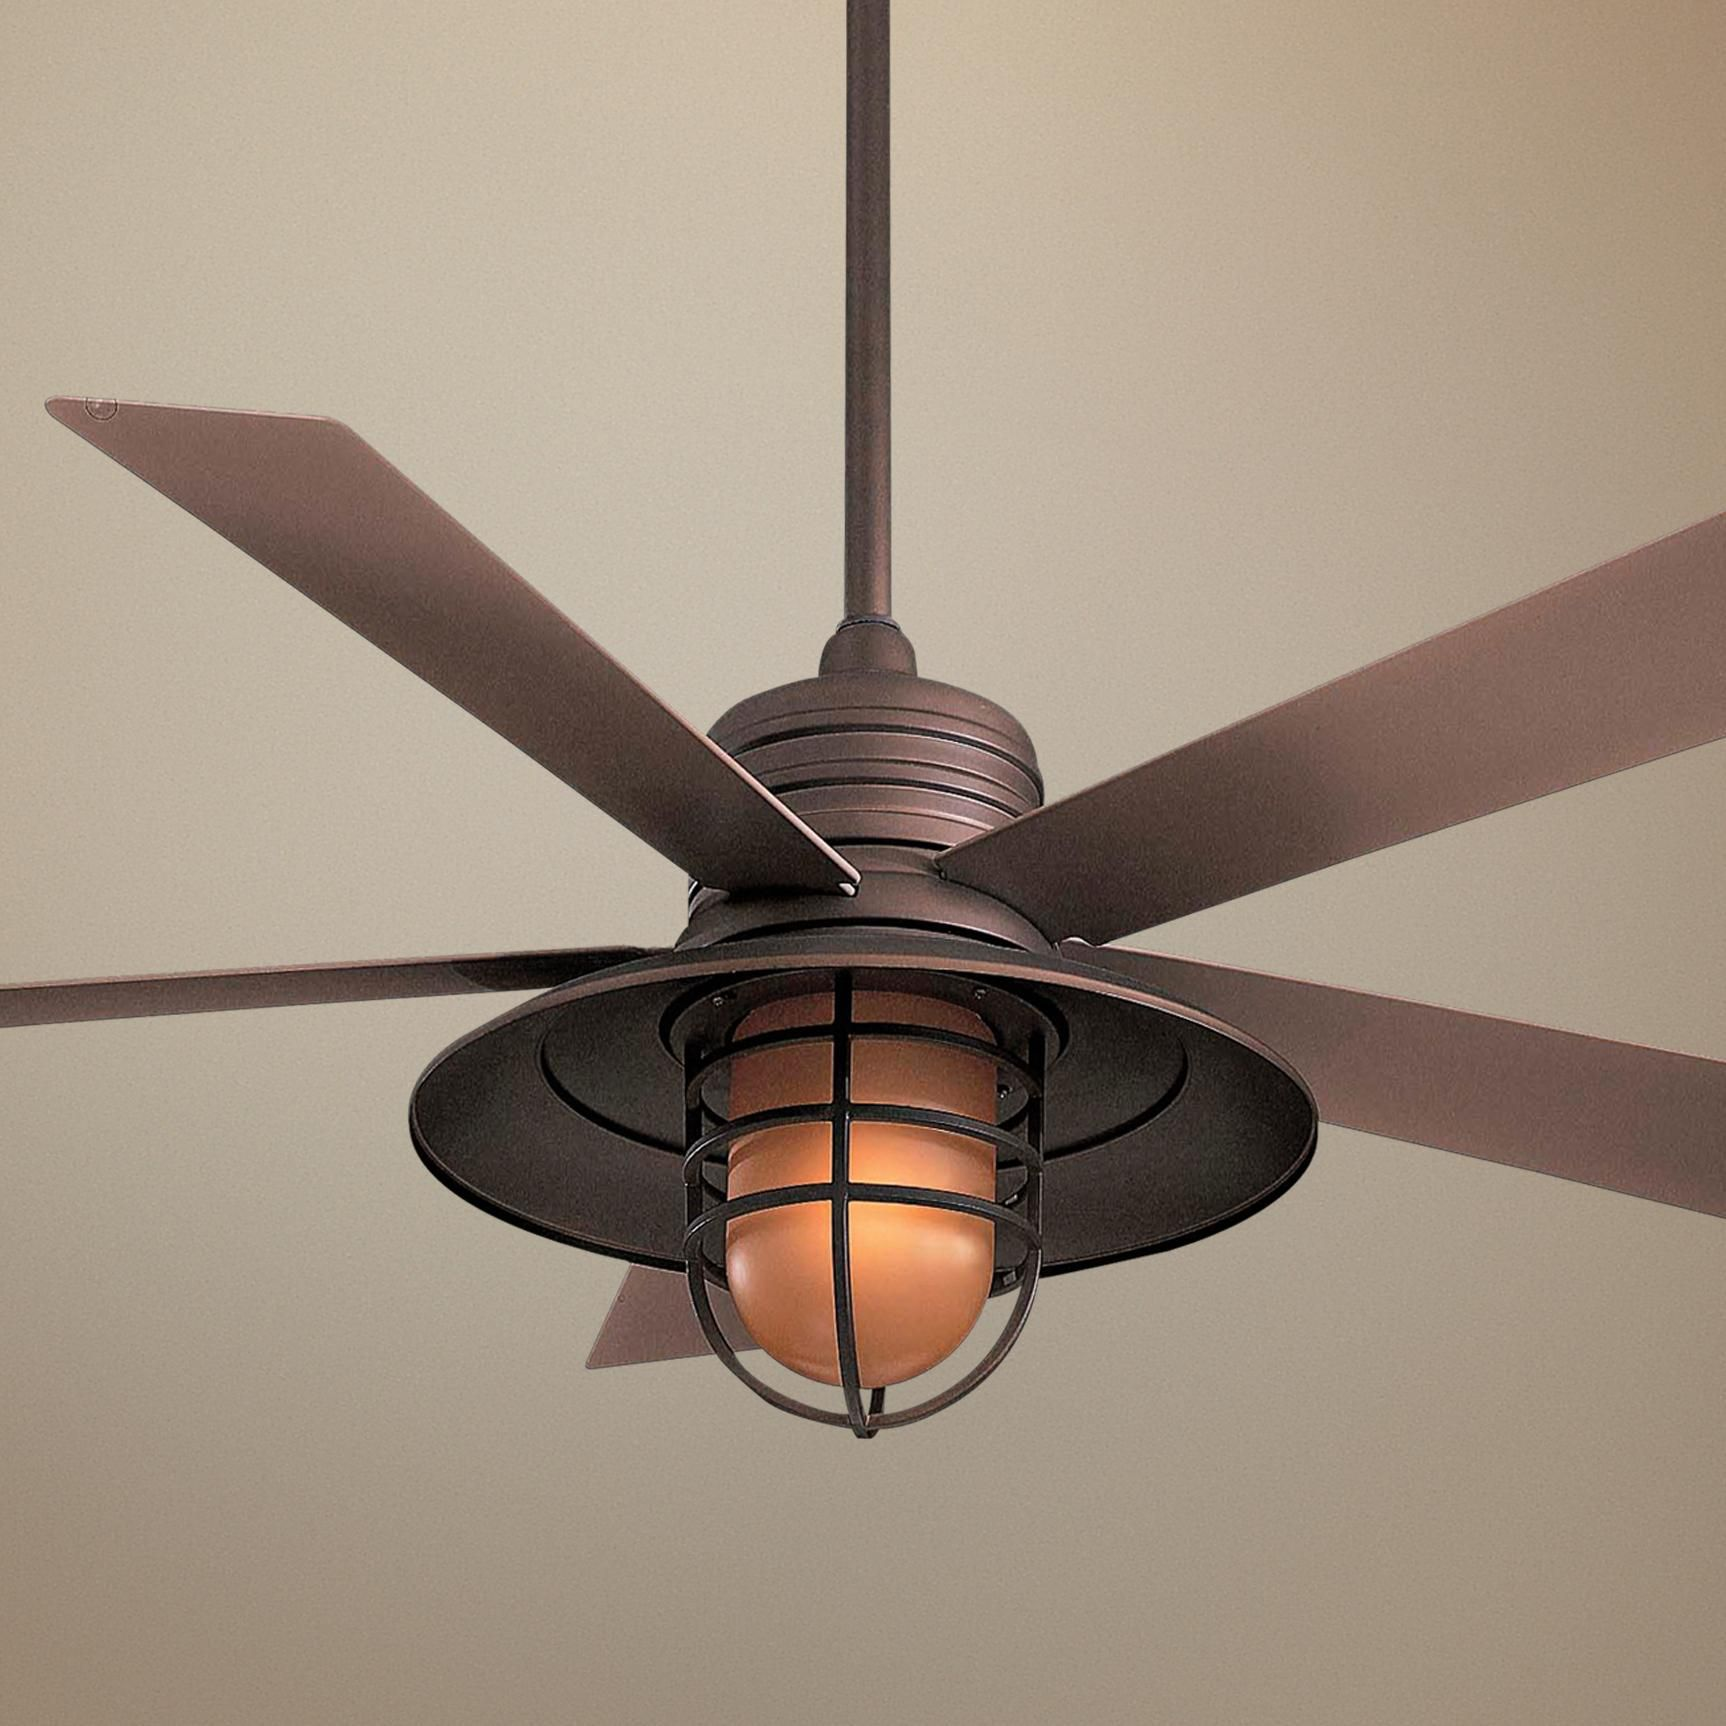 fpx on fan with online lamps fans casa hugger compare finish ceiling habitat prices uquot plus white